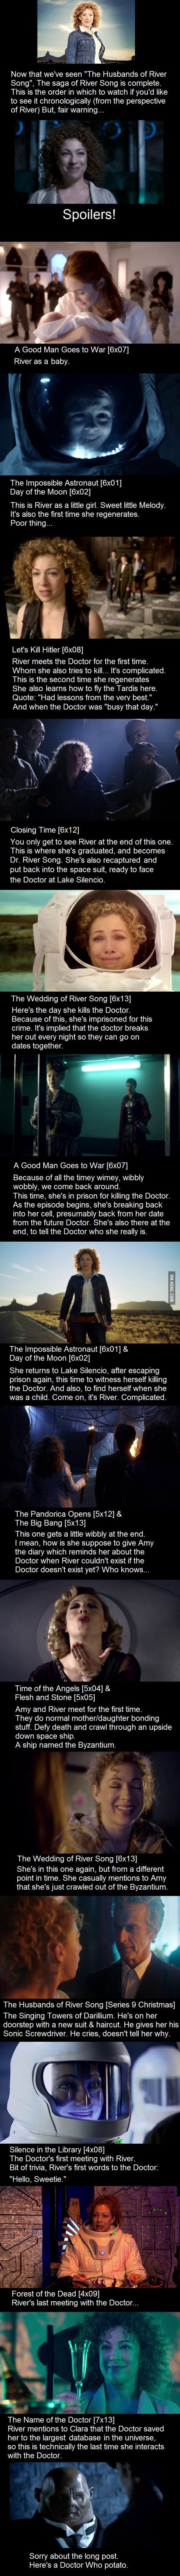 River Song's Timeline. Watch in this order if you'd like to see River's journey in Doctor Who #drwho Sie inetessieren sich für den einzigartigen Gentleman Look? Schauen Sie im Blog vorbei www.thegentlemanclub.de